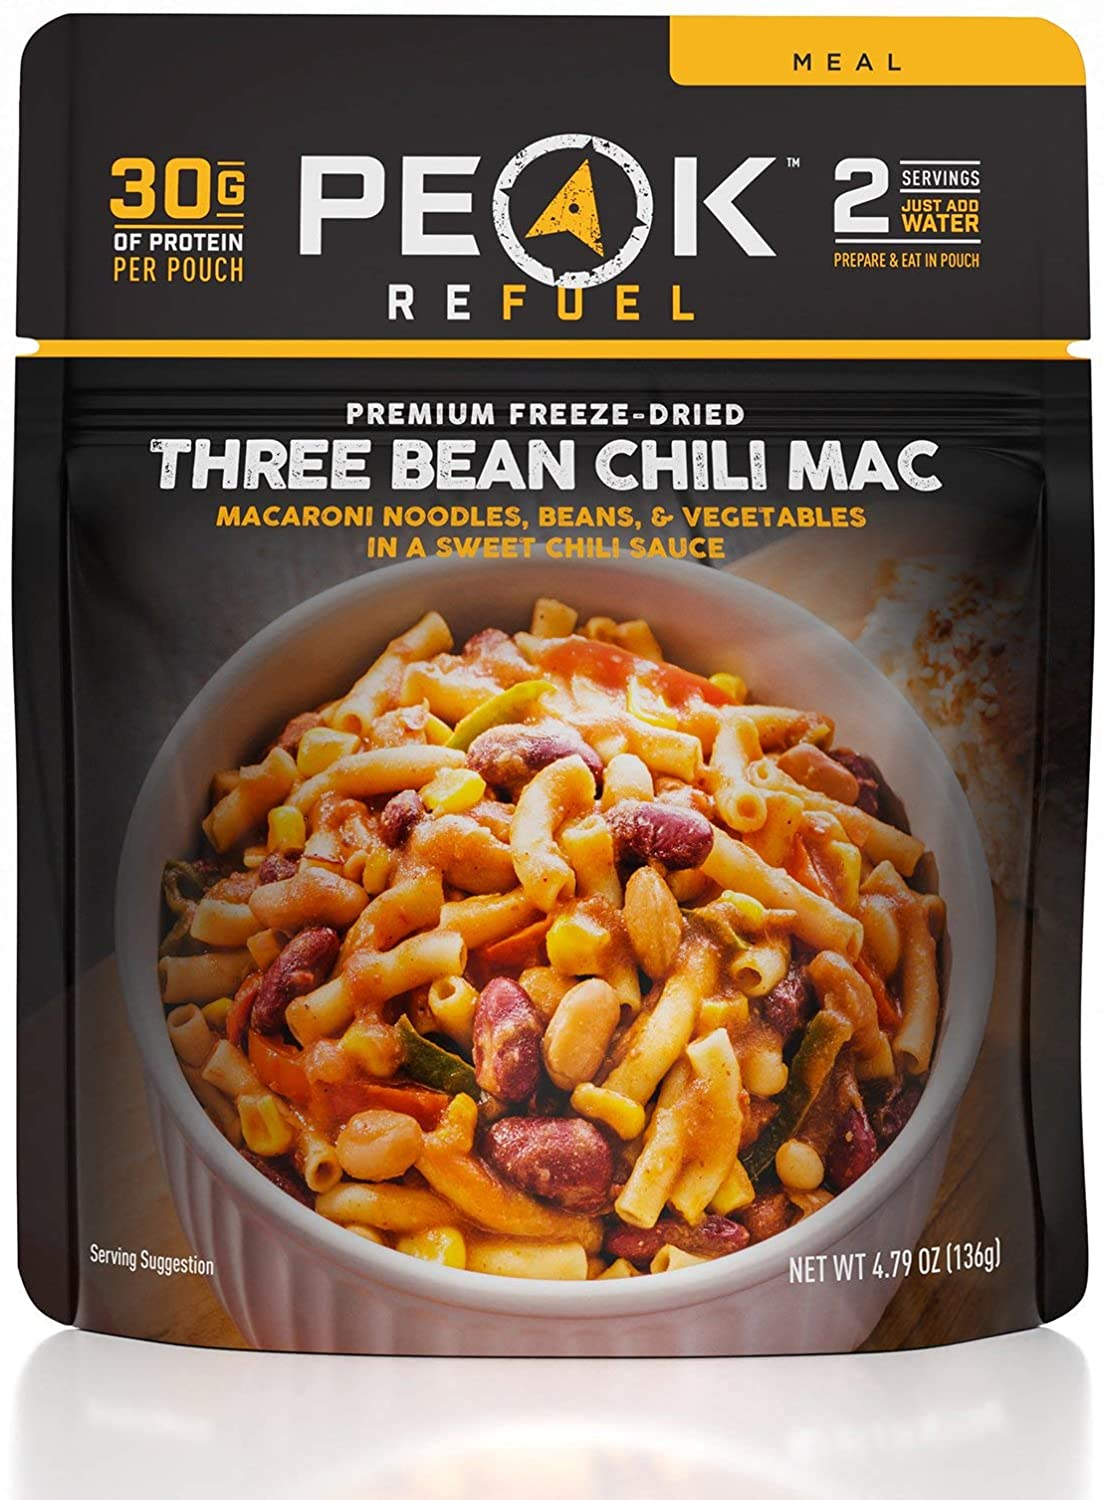 Peak Refuel Three Bean Chili Mac | Vegan | Freeze Dried Backpacking and Camping Food | Amazing Taste | High Protein | Quick Prep | Lightweight